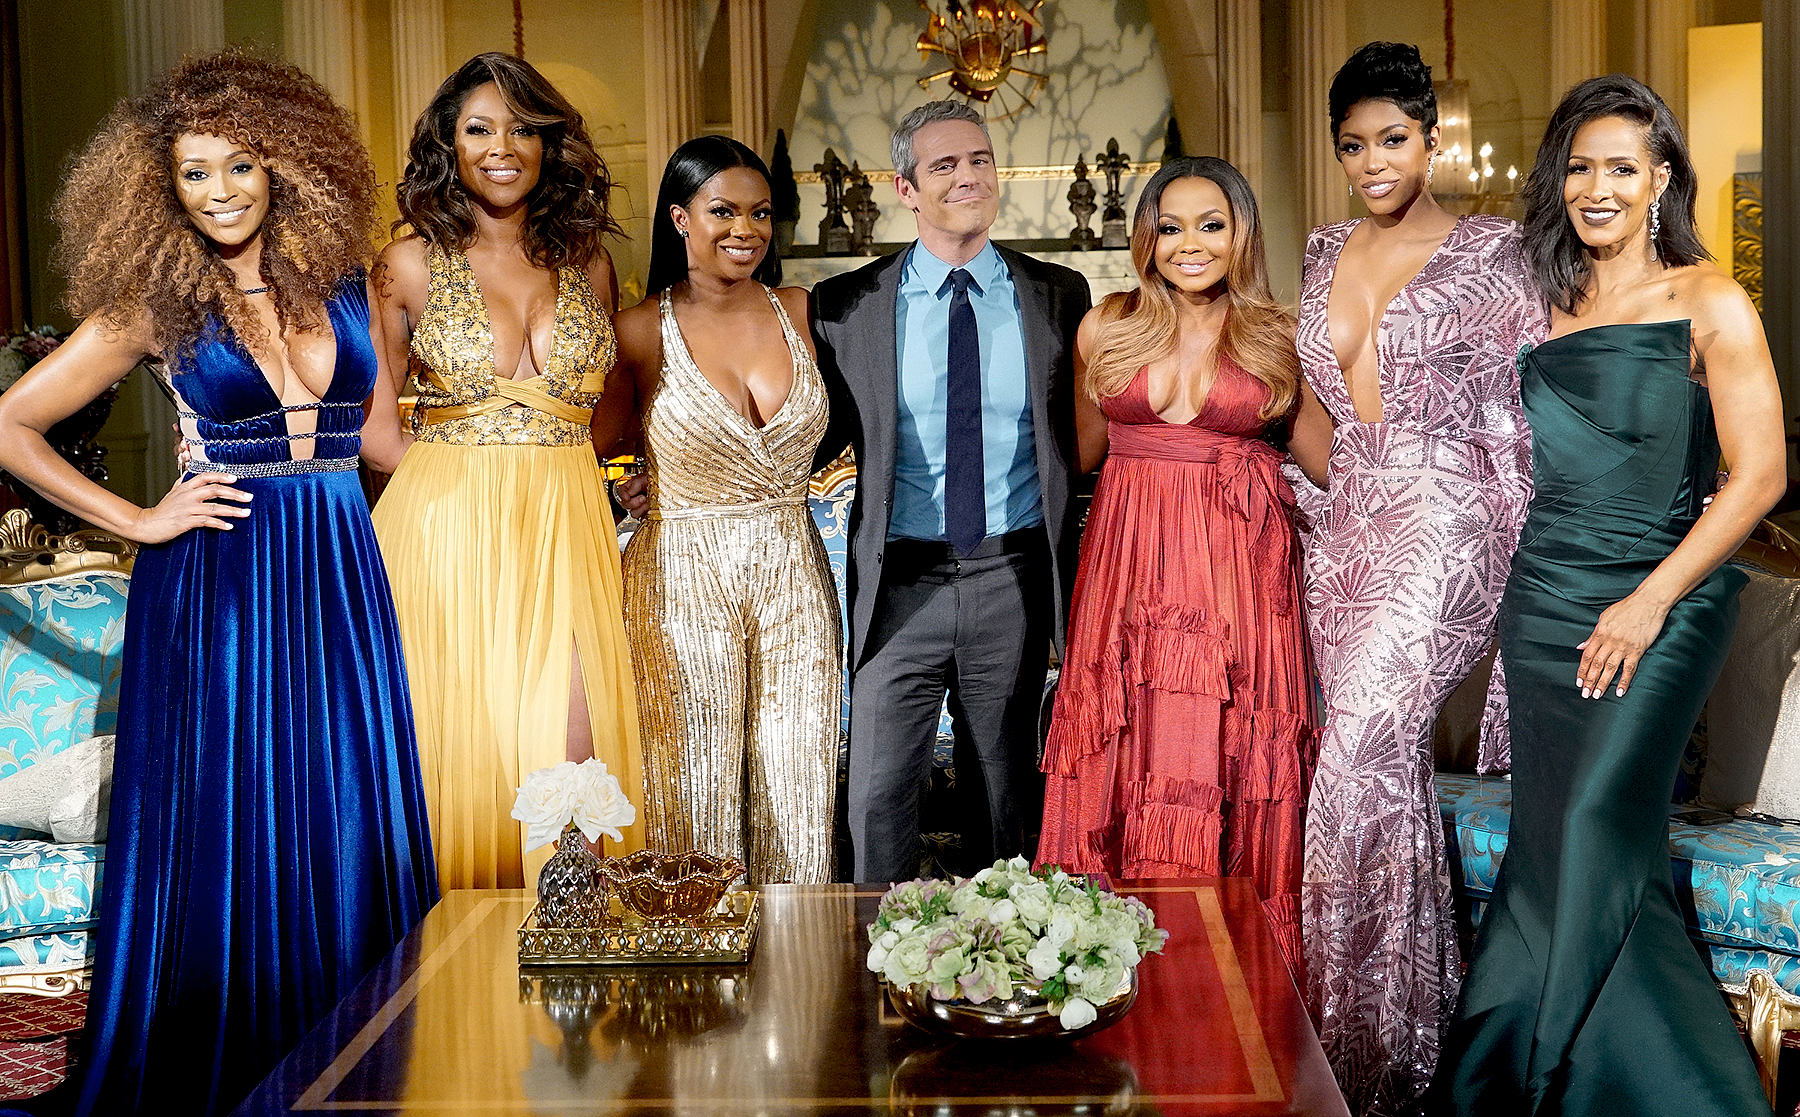 Cynthia Bailey, Kenya Moore, Kandi Burruss, Andy Cohen, Phaedra Parks, Porsha Williams and Sheree Whitfield attend the 'Real Housewives of Atlanta' reunion in April 2017.